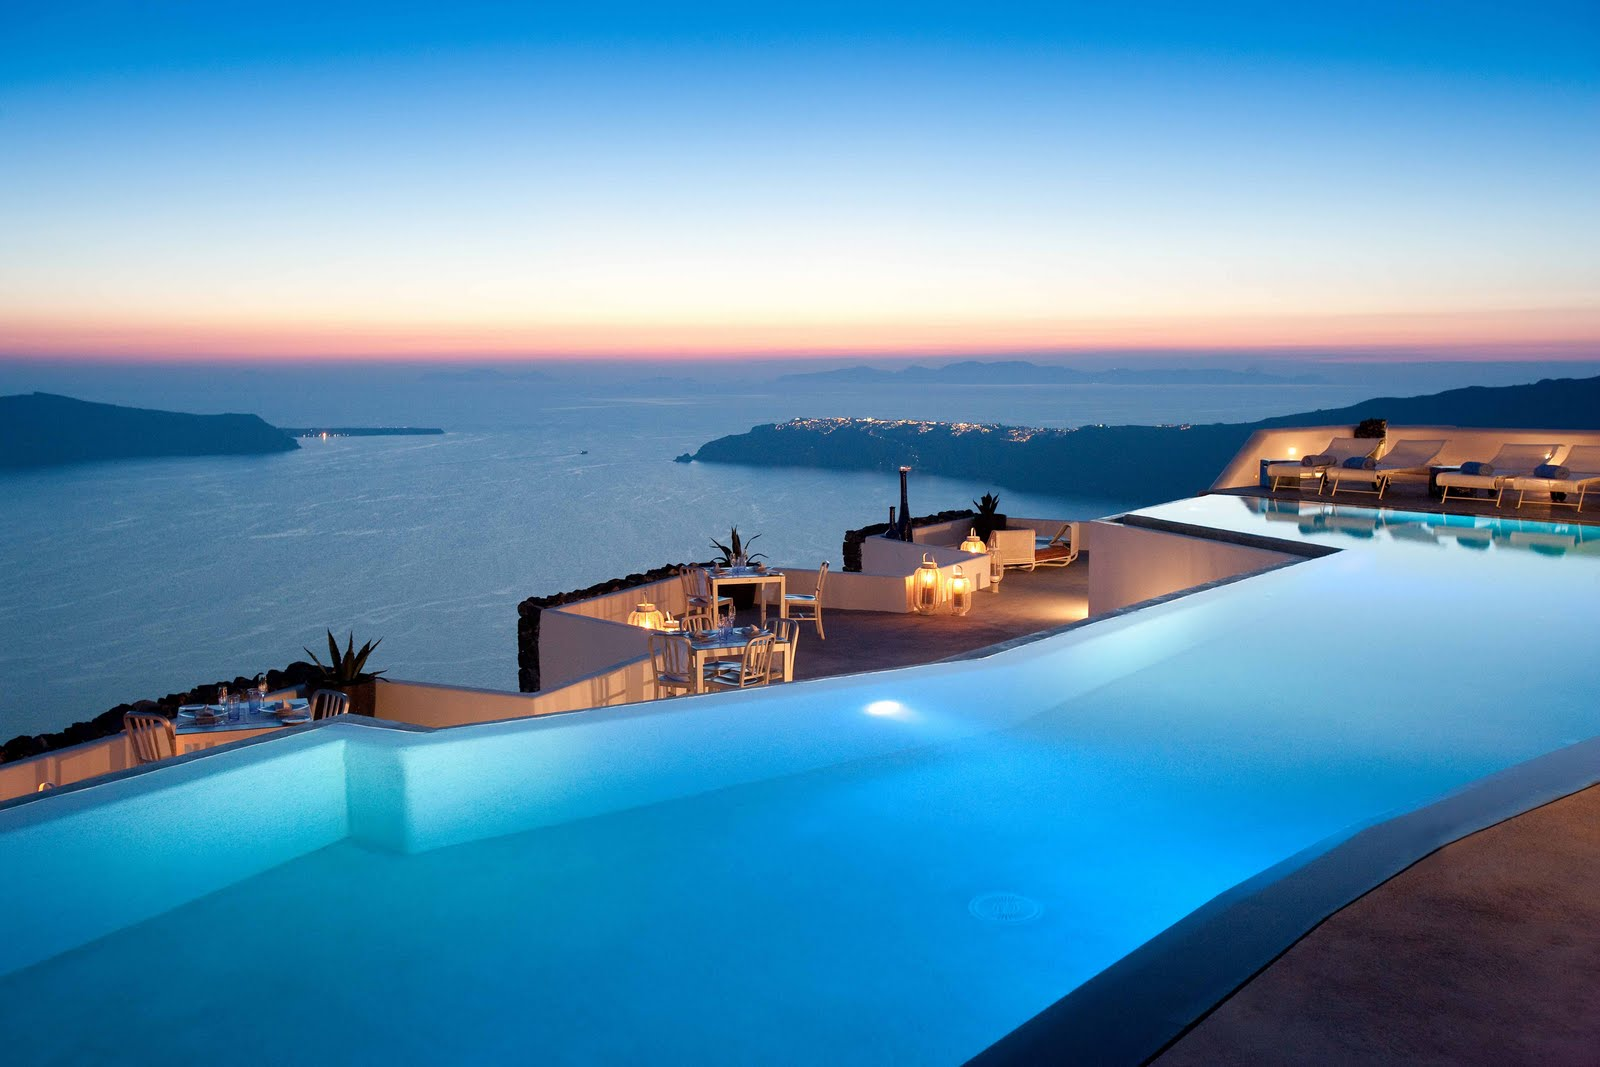 World most luxurious and expensive hotel Santorini Grace